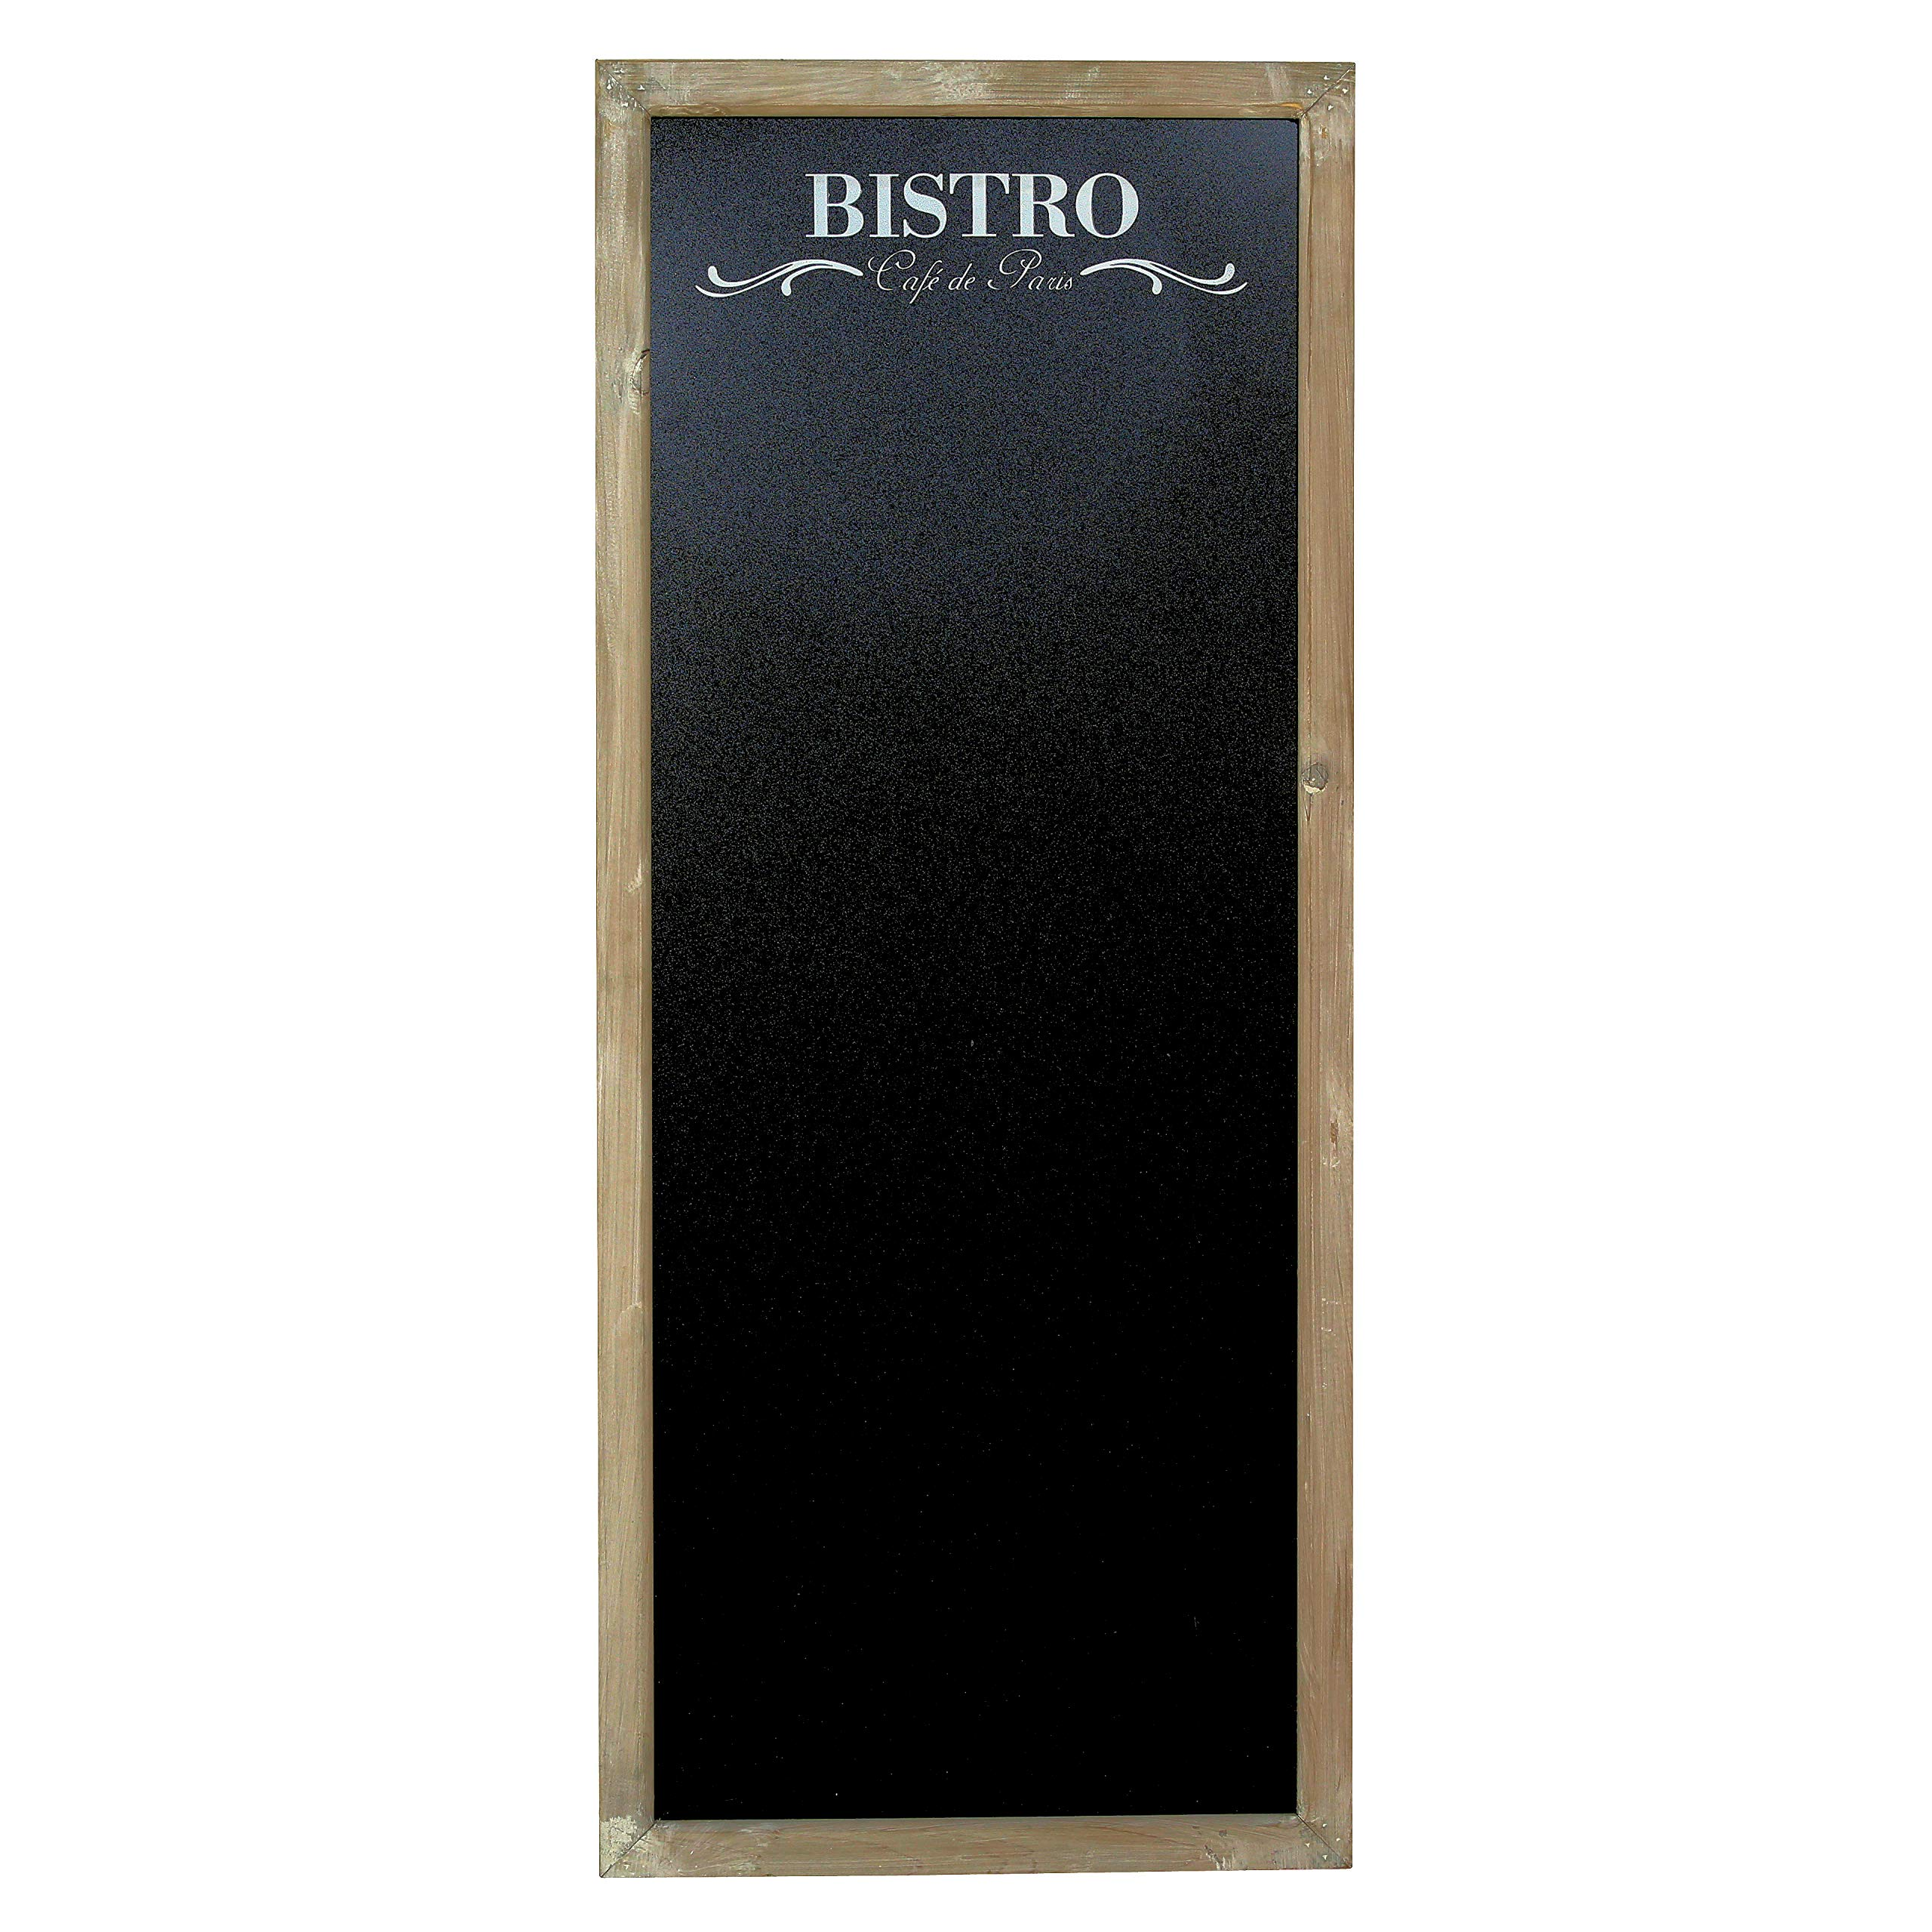 WHW Whole House Worlds Bistro Framed Chalkboard, Rustic Gray Frame, Sustainable Wood Frame with Insert Black Board, Over 3 1/2 feet Tall (45 1/4 Inches) Rectangular Rustic Shape (115 cm) by WHW Whole House Worlds